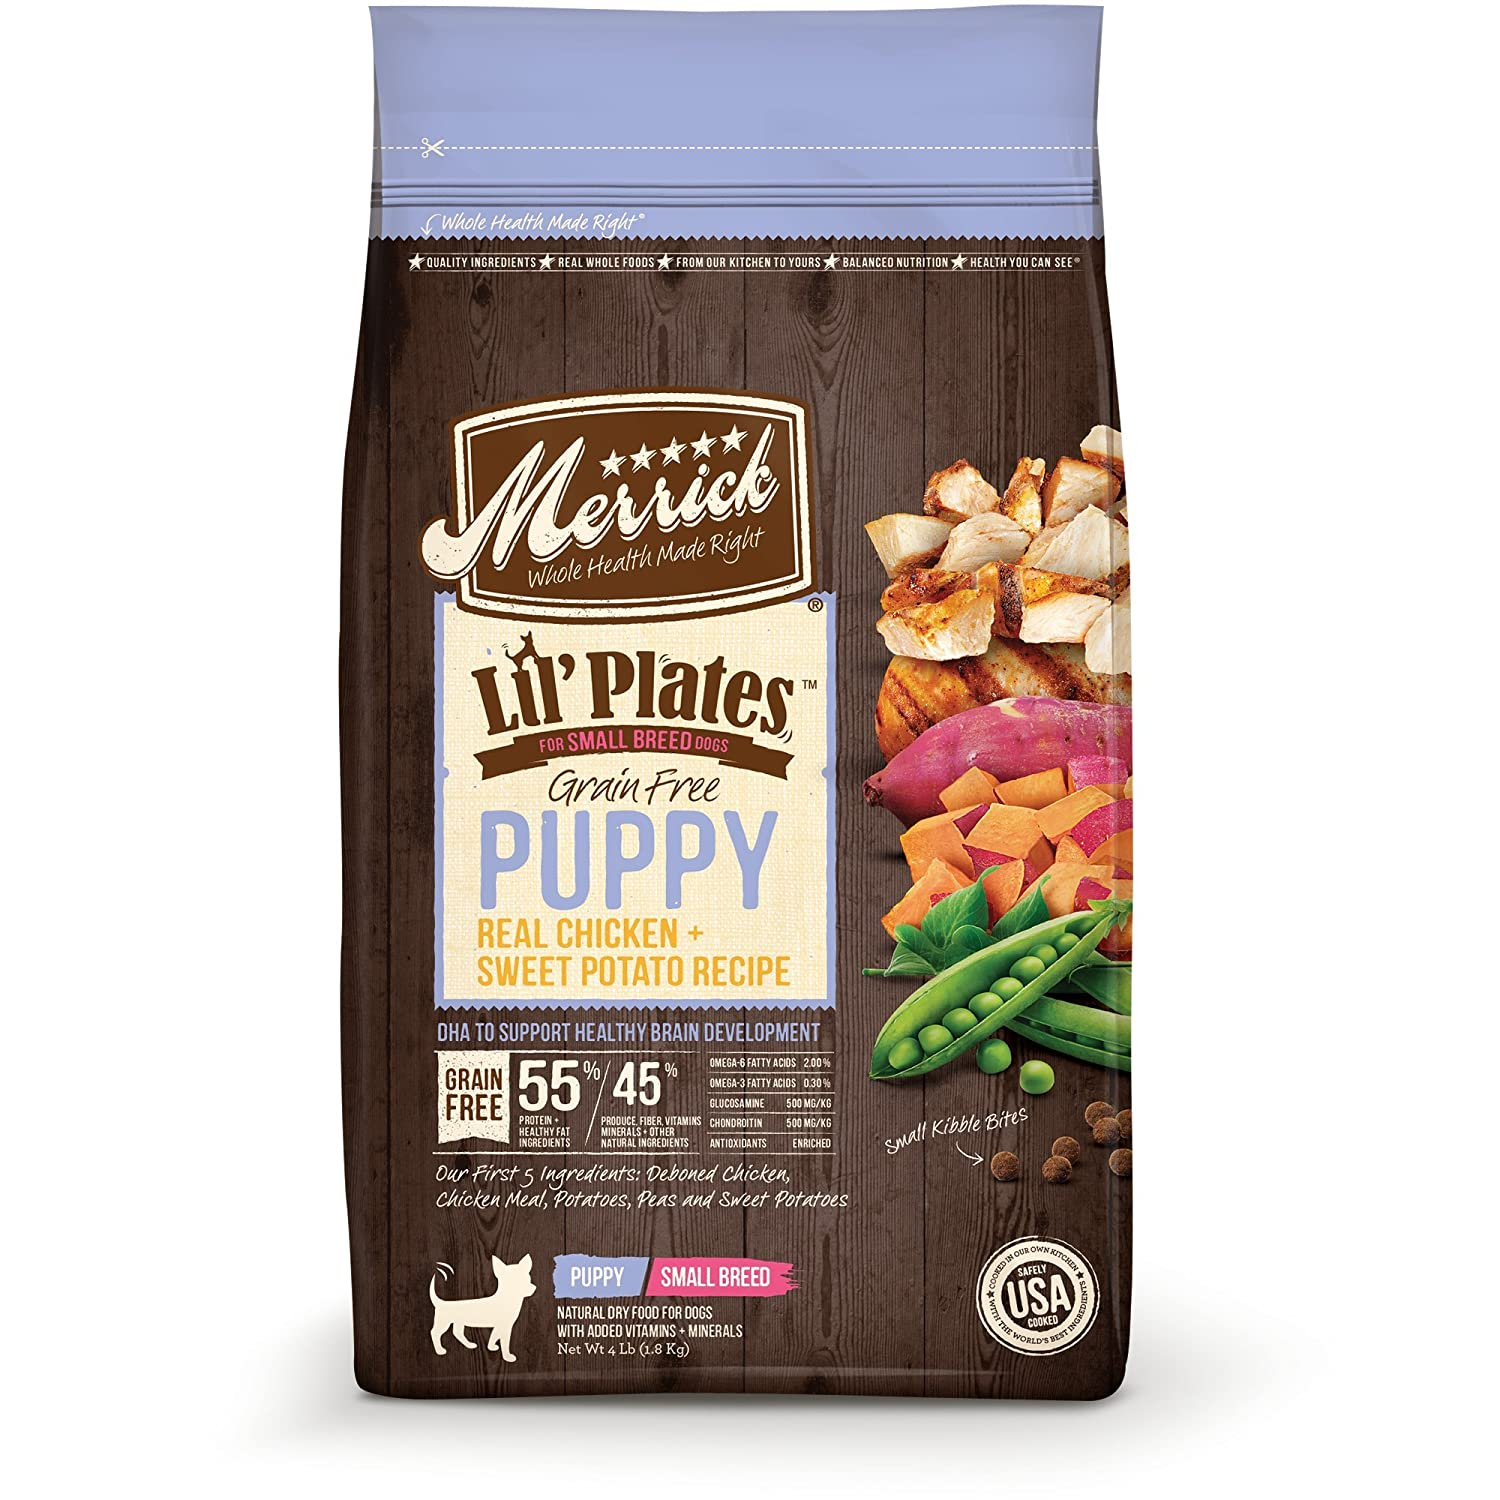 Merrick Lil Plates Grain Free Real Chicken Sweet Potato Small Breed Dry Puppy Food